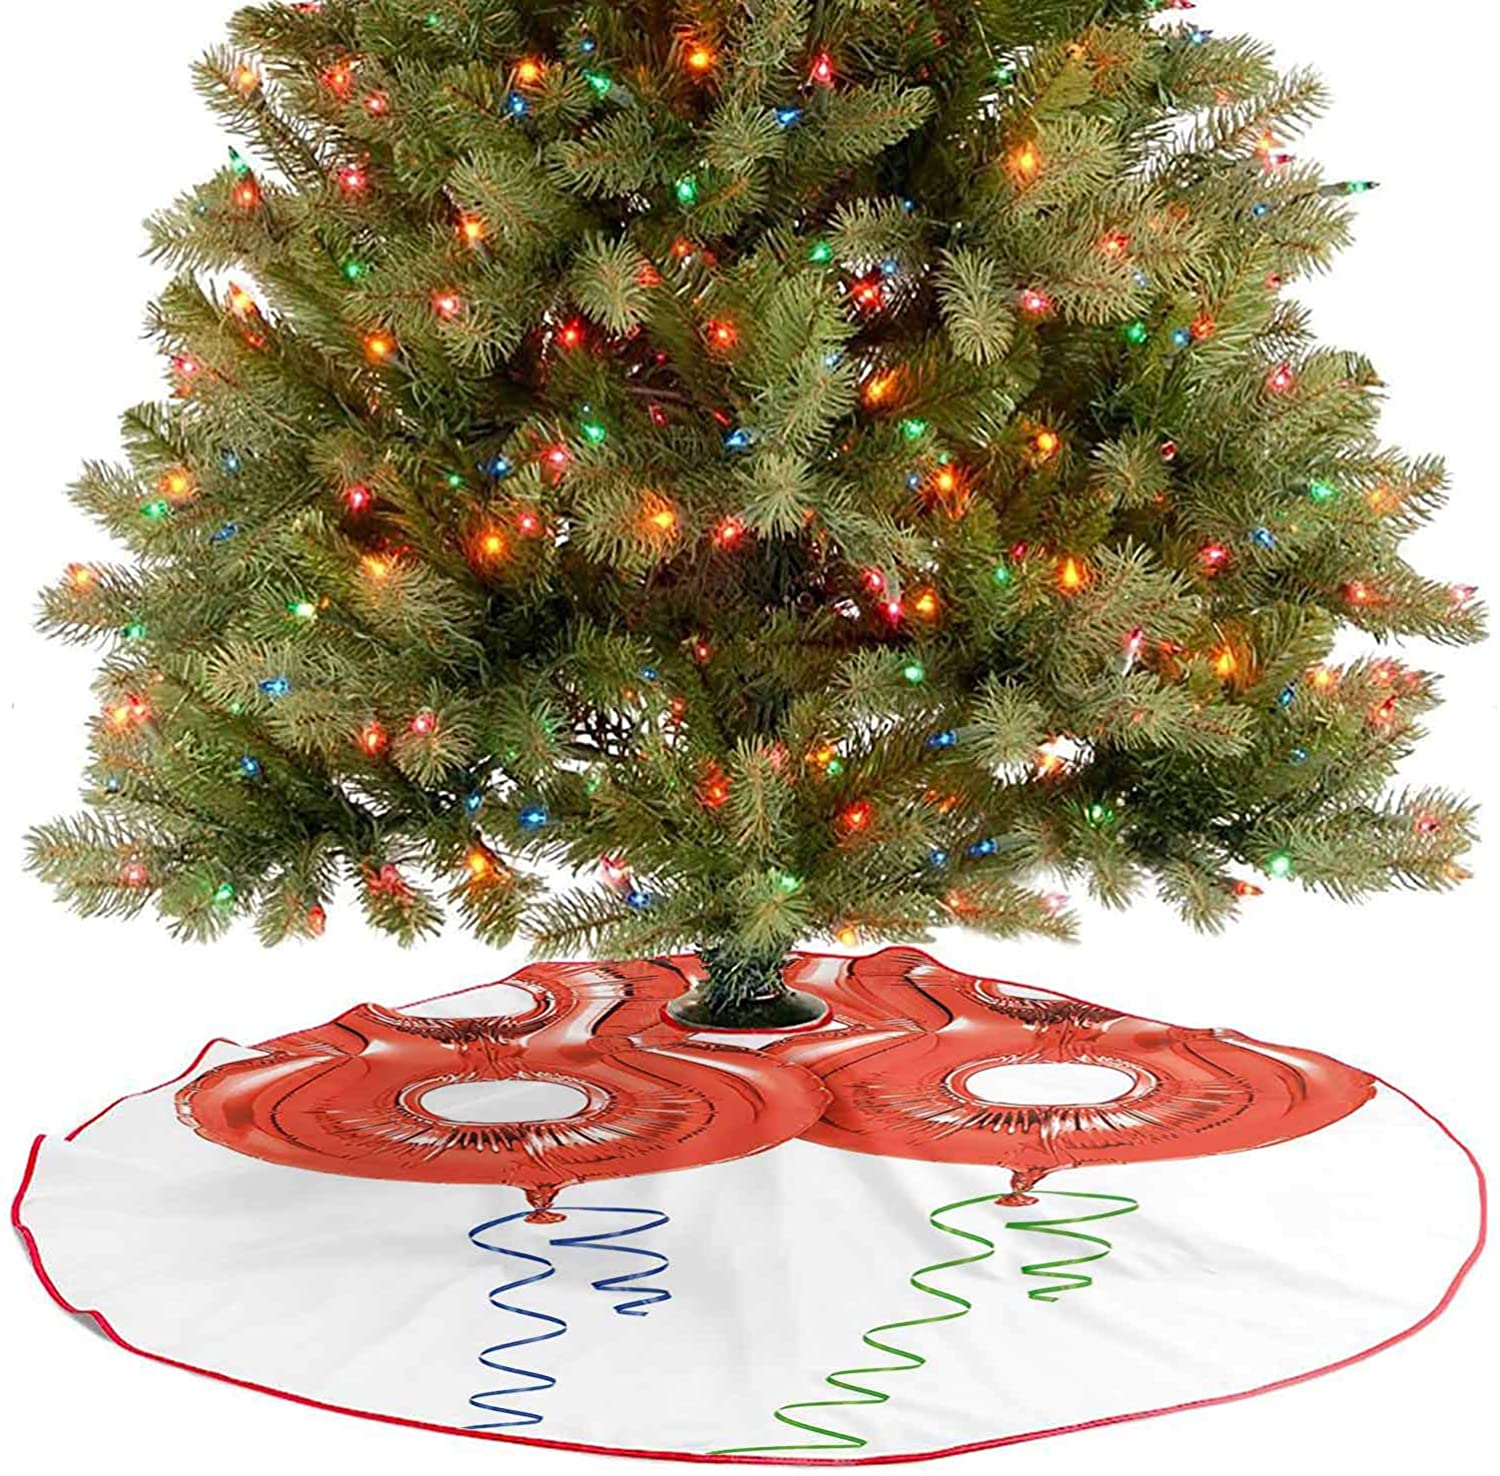 Adorise Tree Skirt Red Balloon Number Cheerful Party Elements Aging Design Lime Green Blue Decoration Ornaments Goes Perfectly with Your Tree - 30 Inch